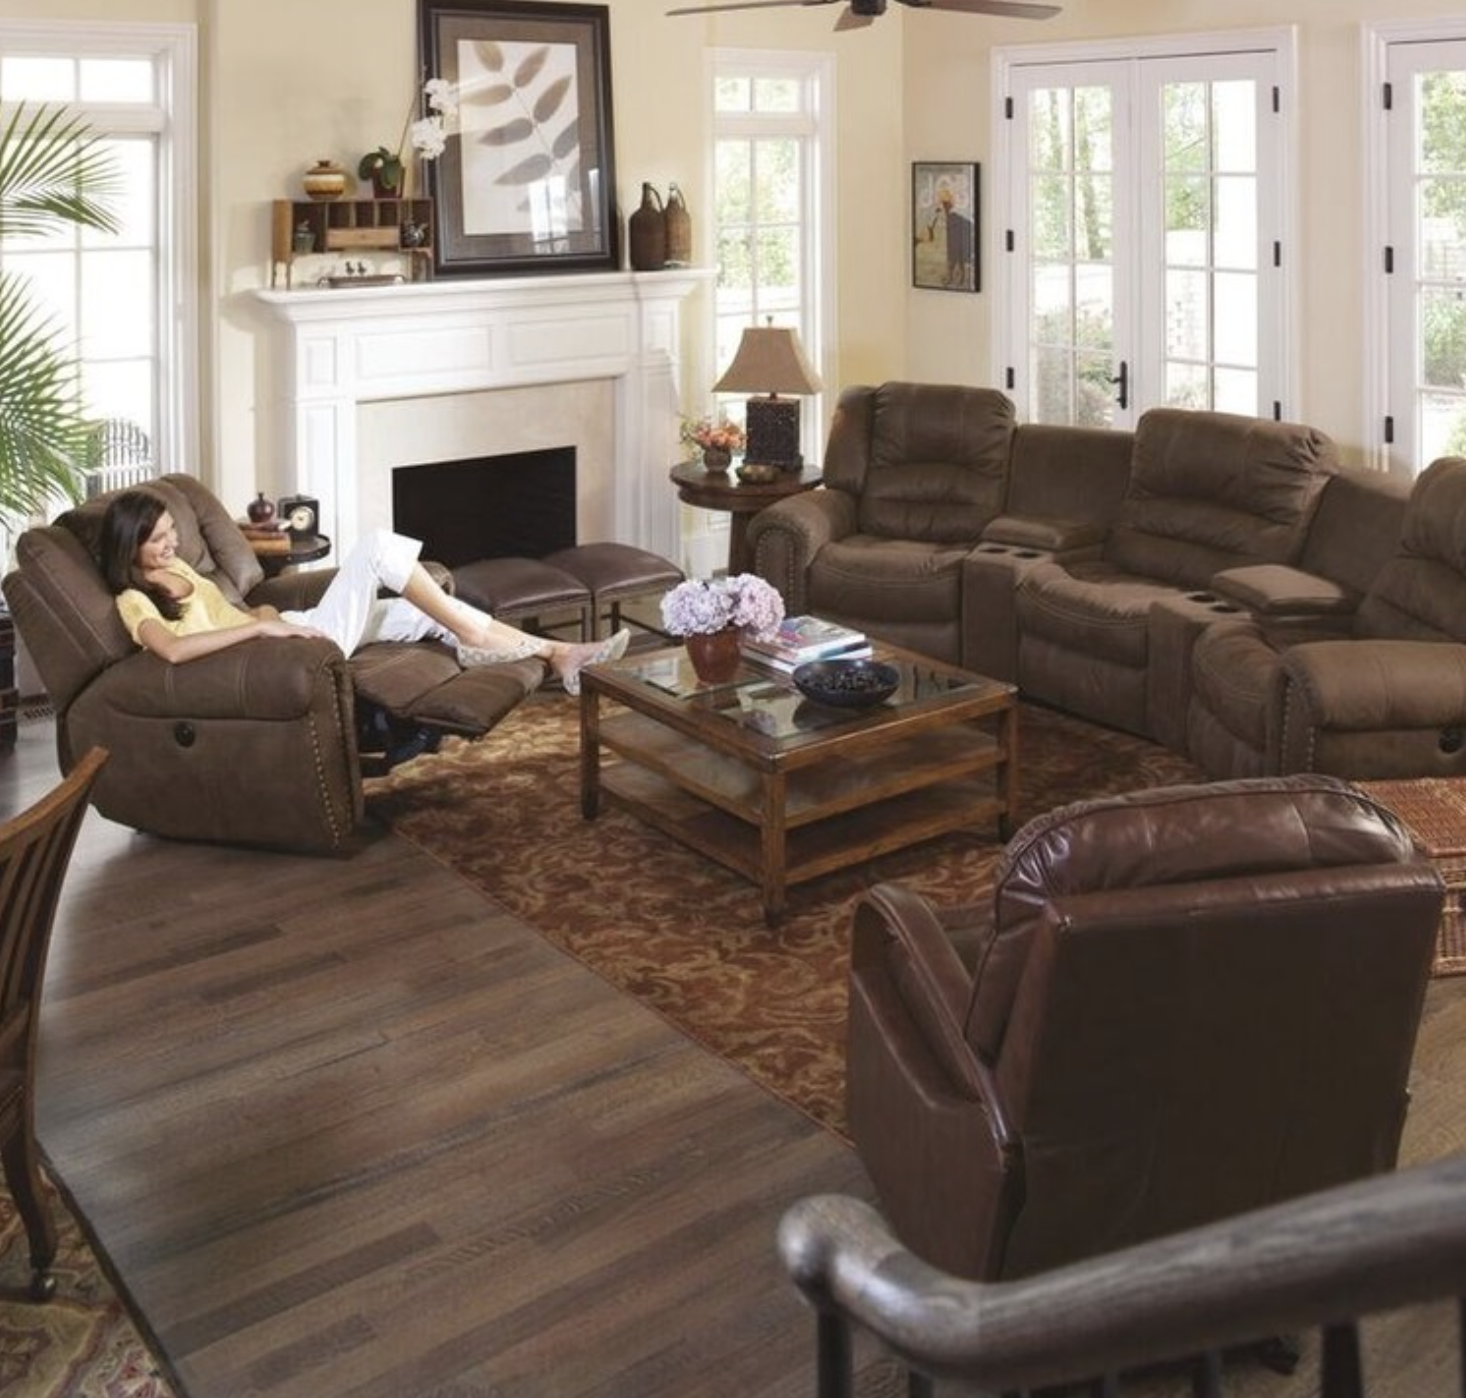 For more spacious rooms spread out your furniture to avoid large